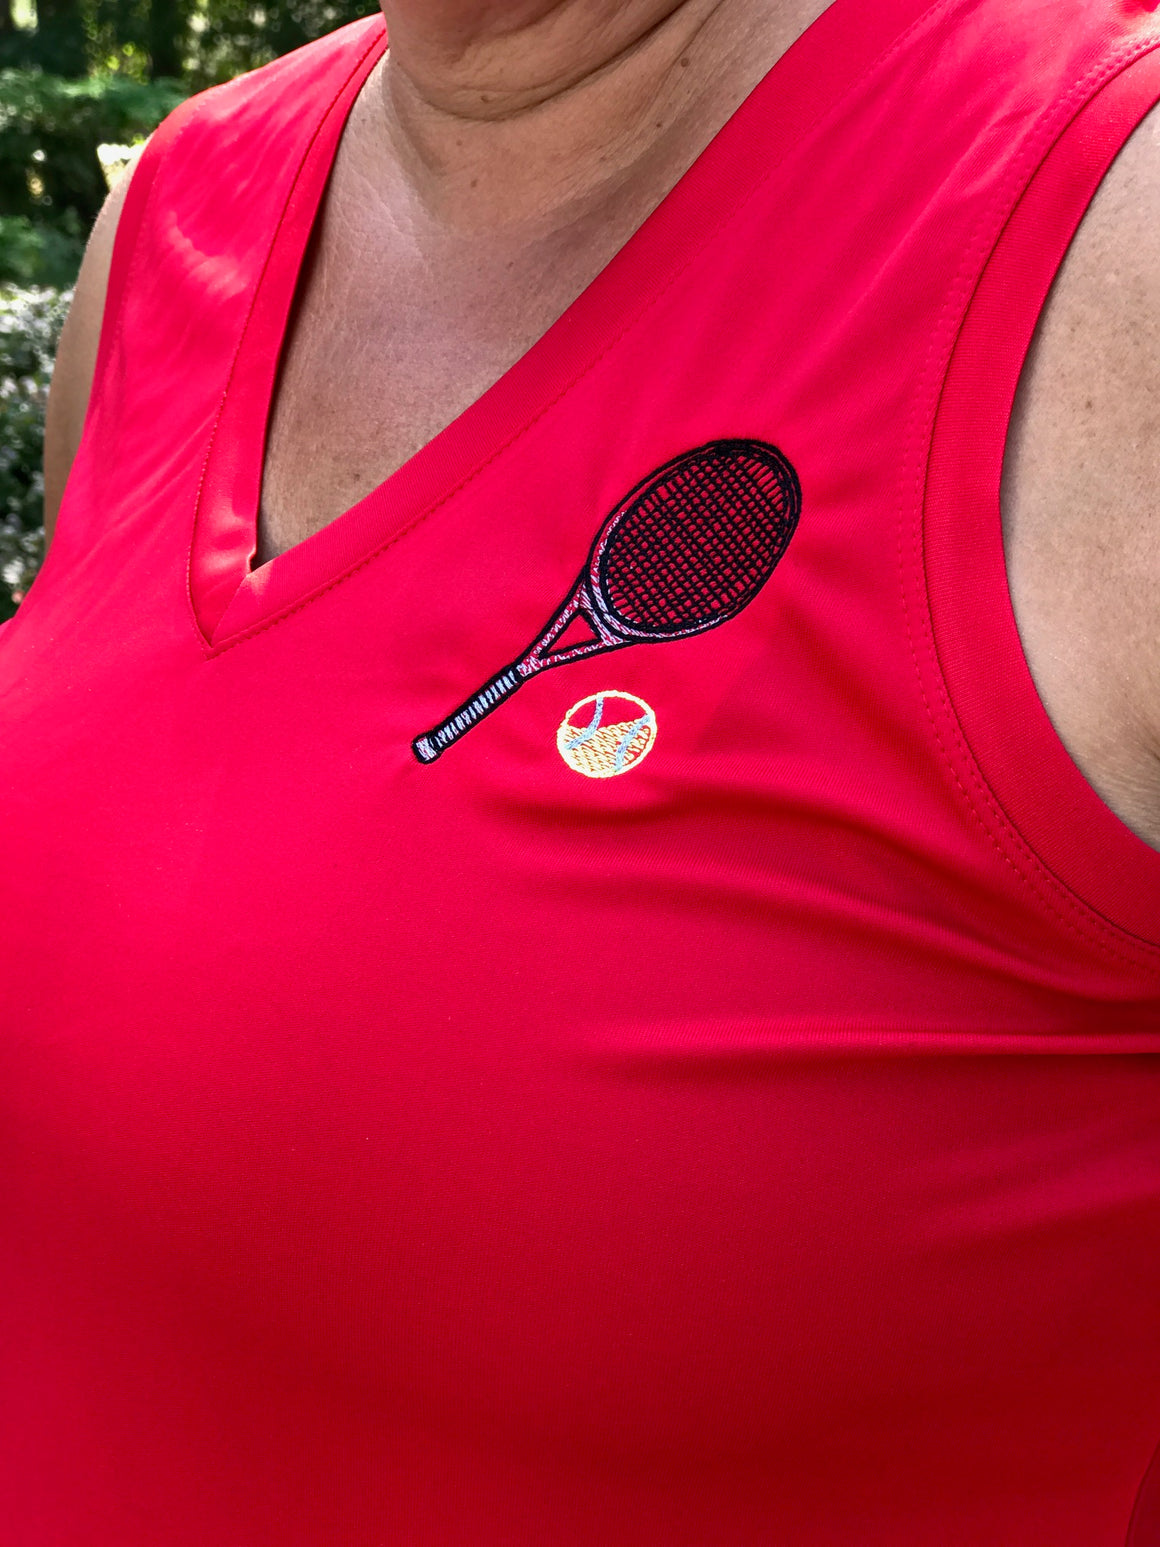 Tennis Performance Tank Crossed Racquets